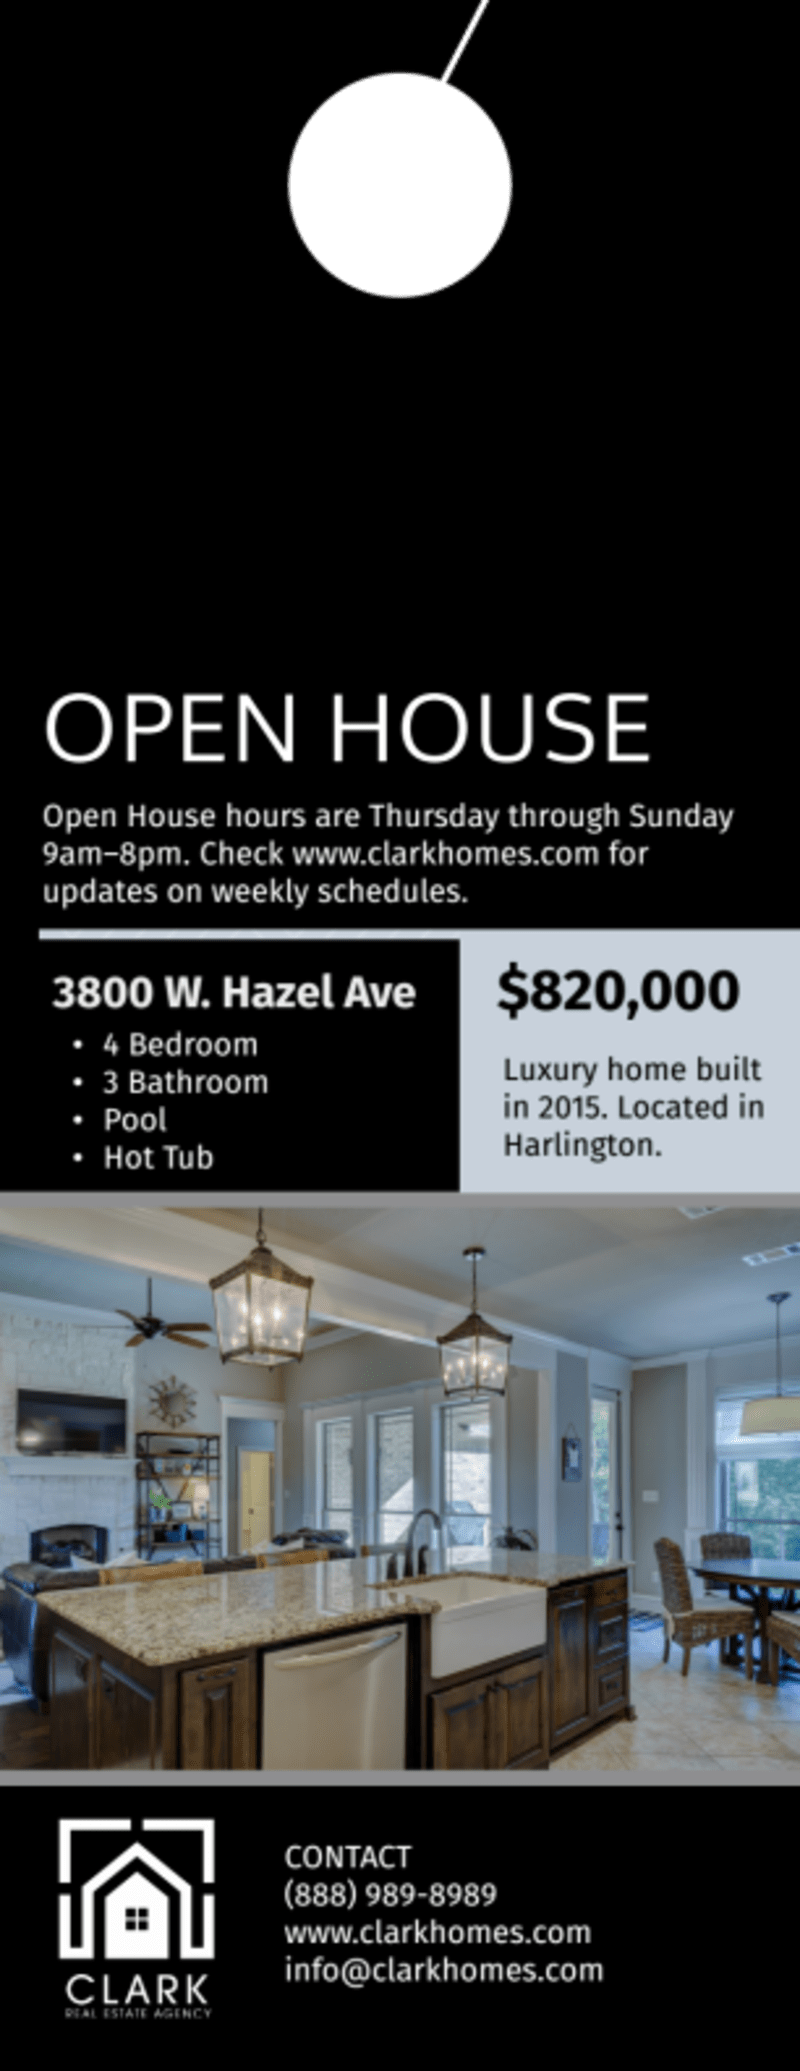 Real Estate Open House Door Hanger Template Preview 3